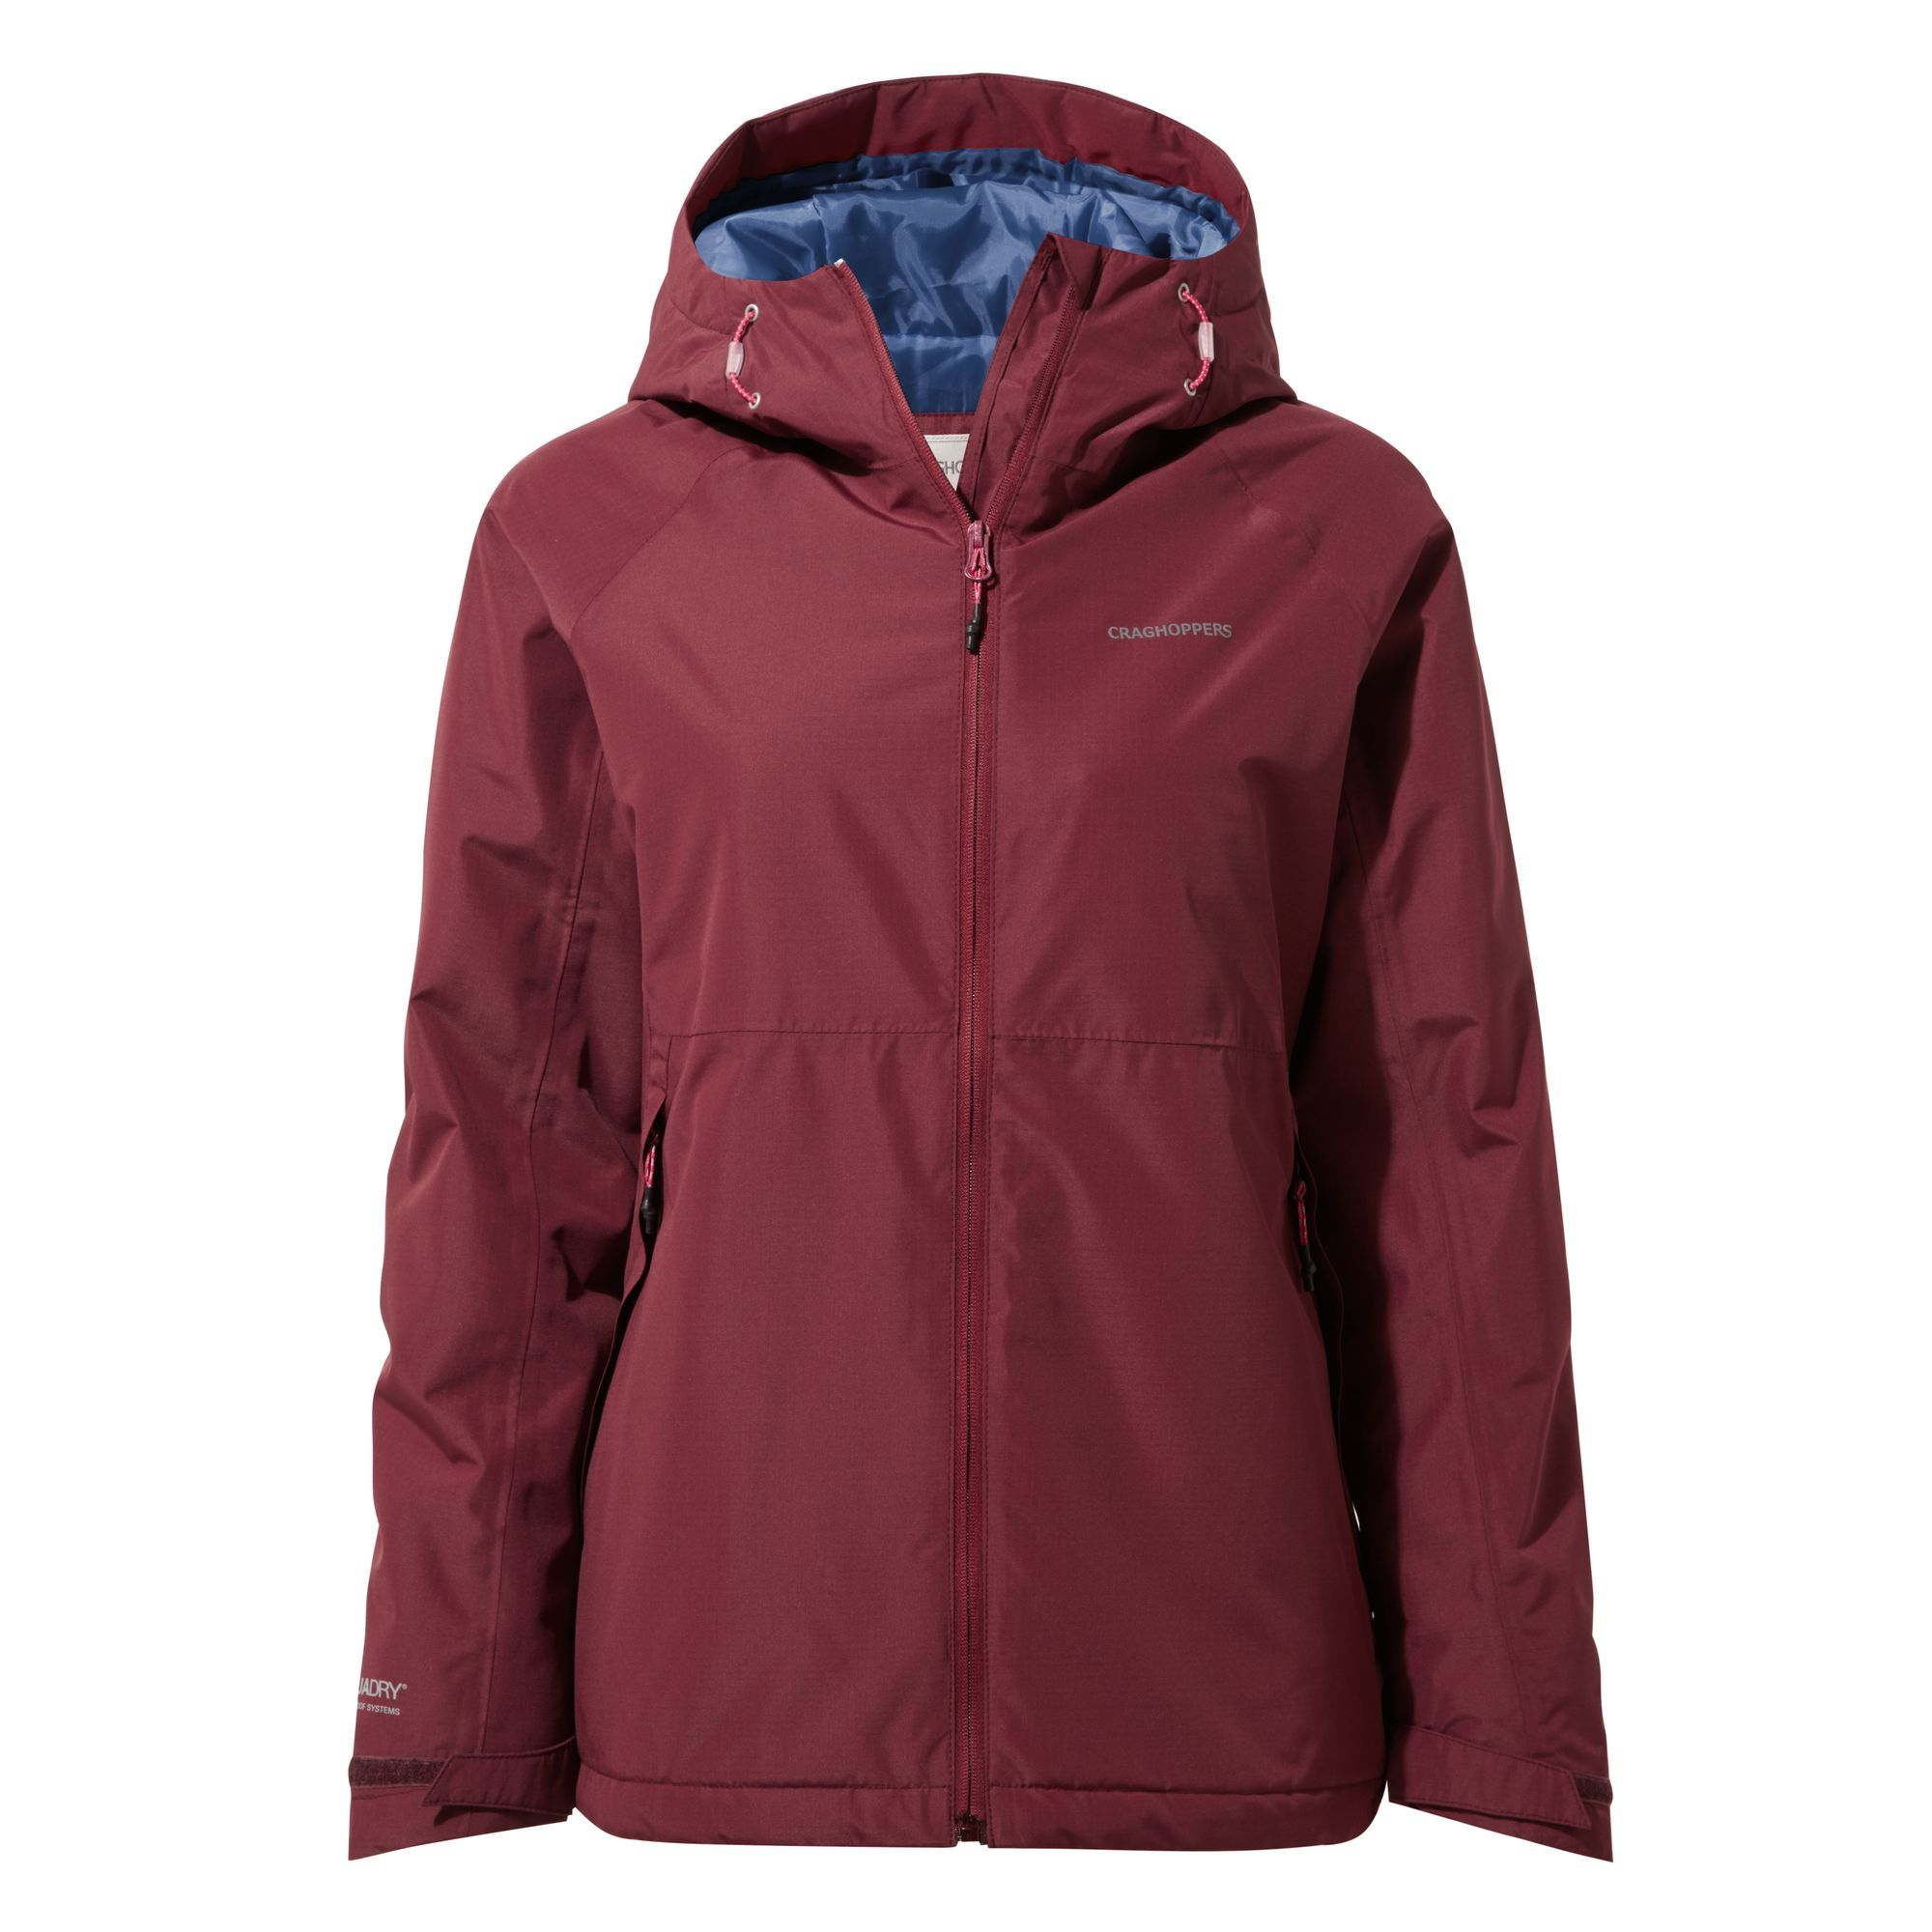 Craghoppers Womens Aurora Jacket